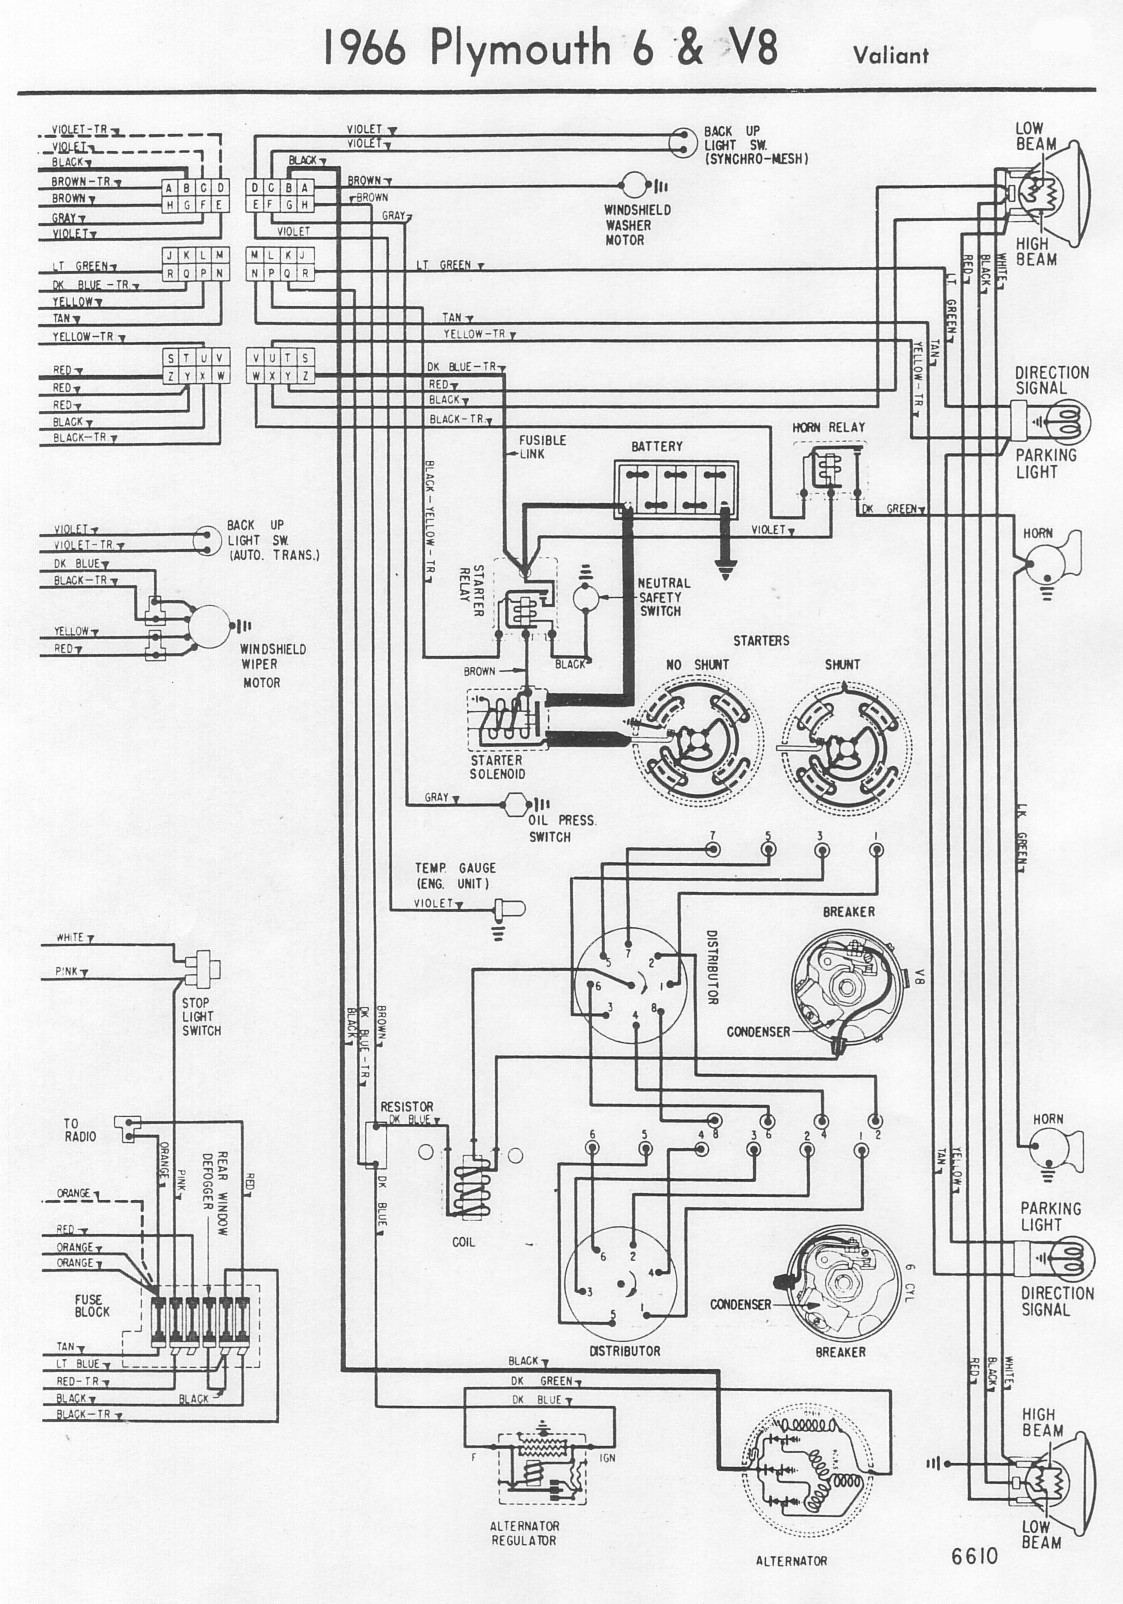 1972 Plymouth Roadrunner Wiring Diagram Smart Diagrams 1973 1969 Road Runner Diy Enthusiasts Rh Broadwaycomputers Us 1970 Satellite